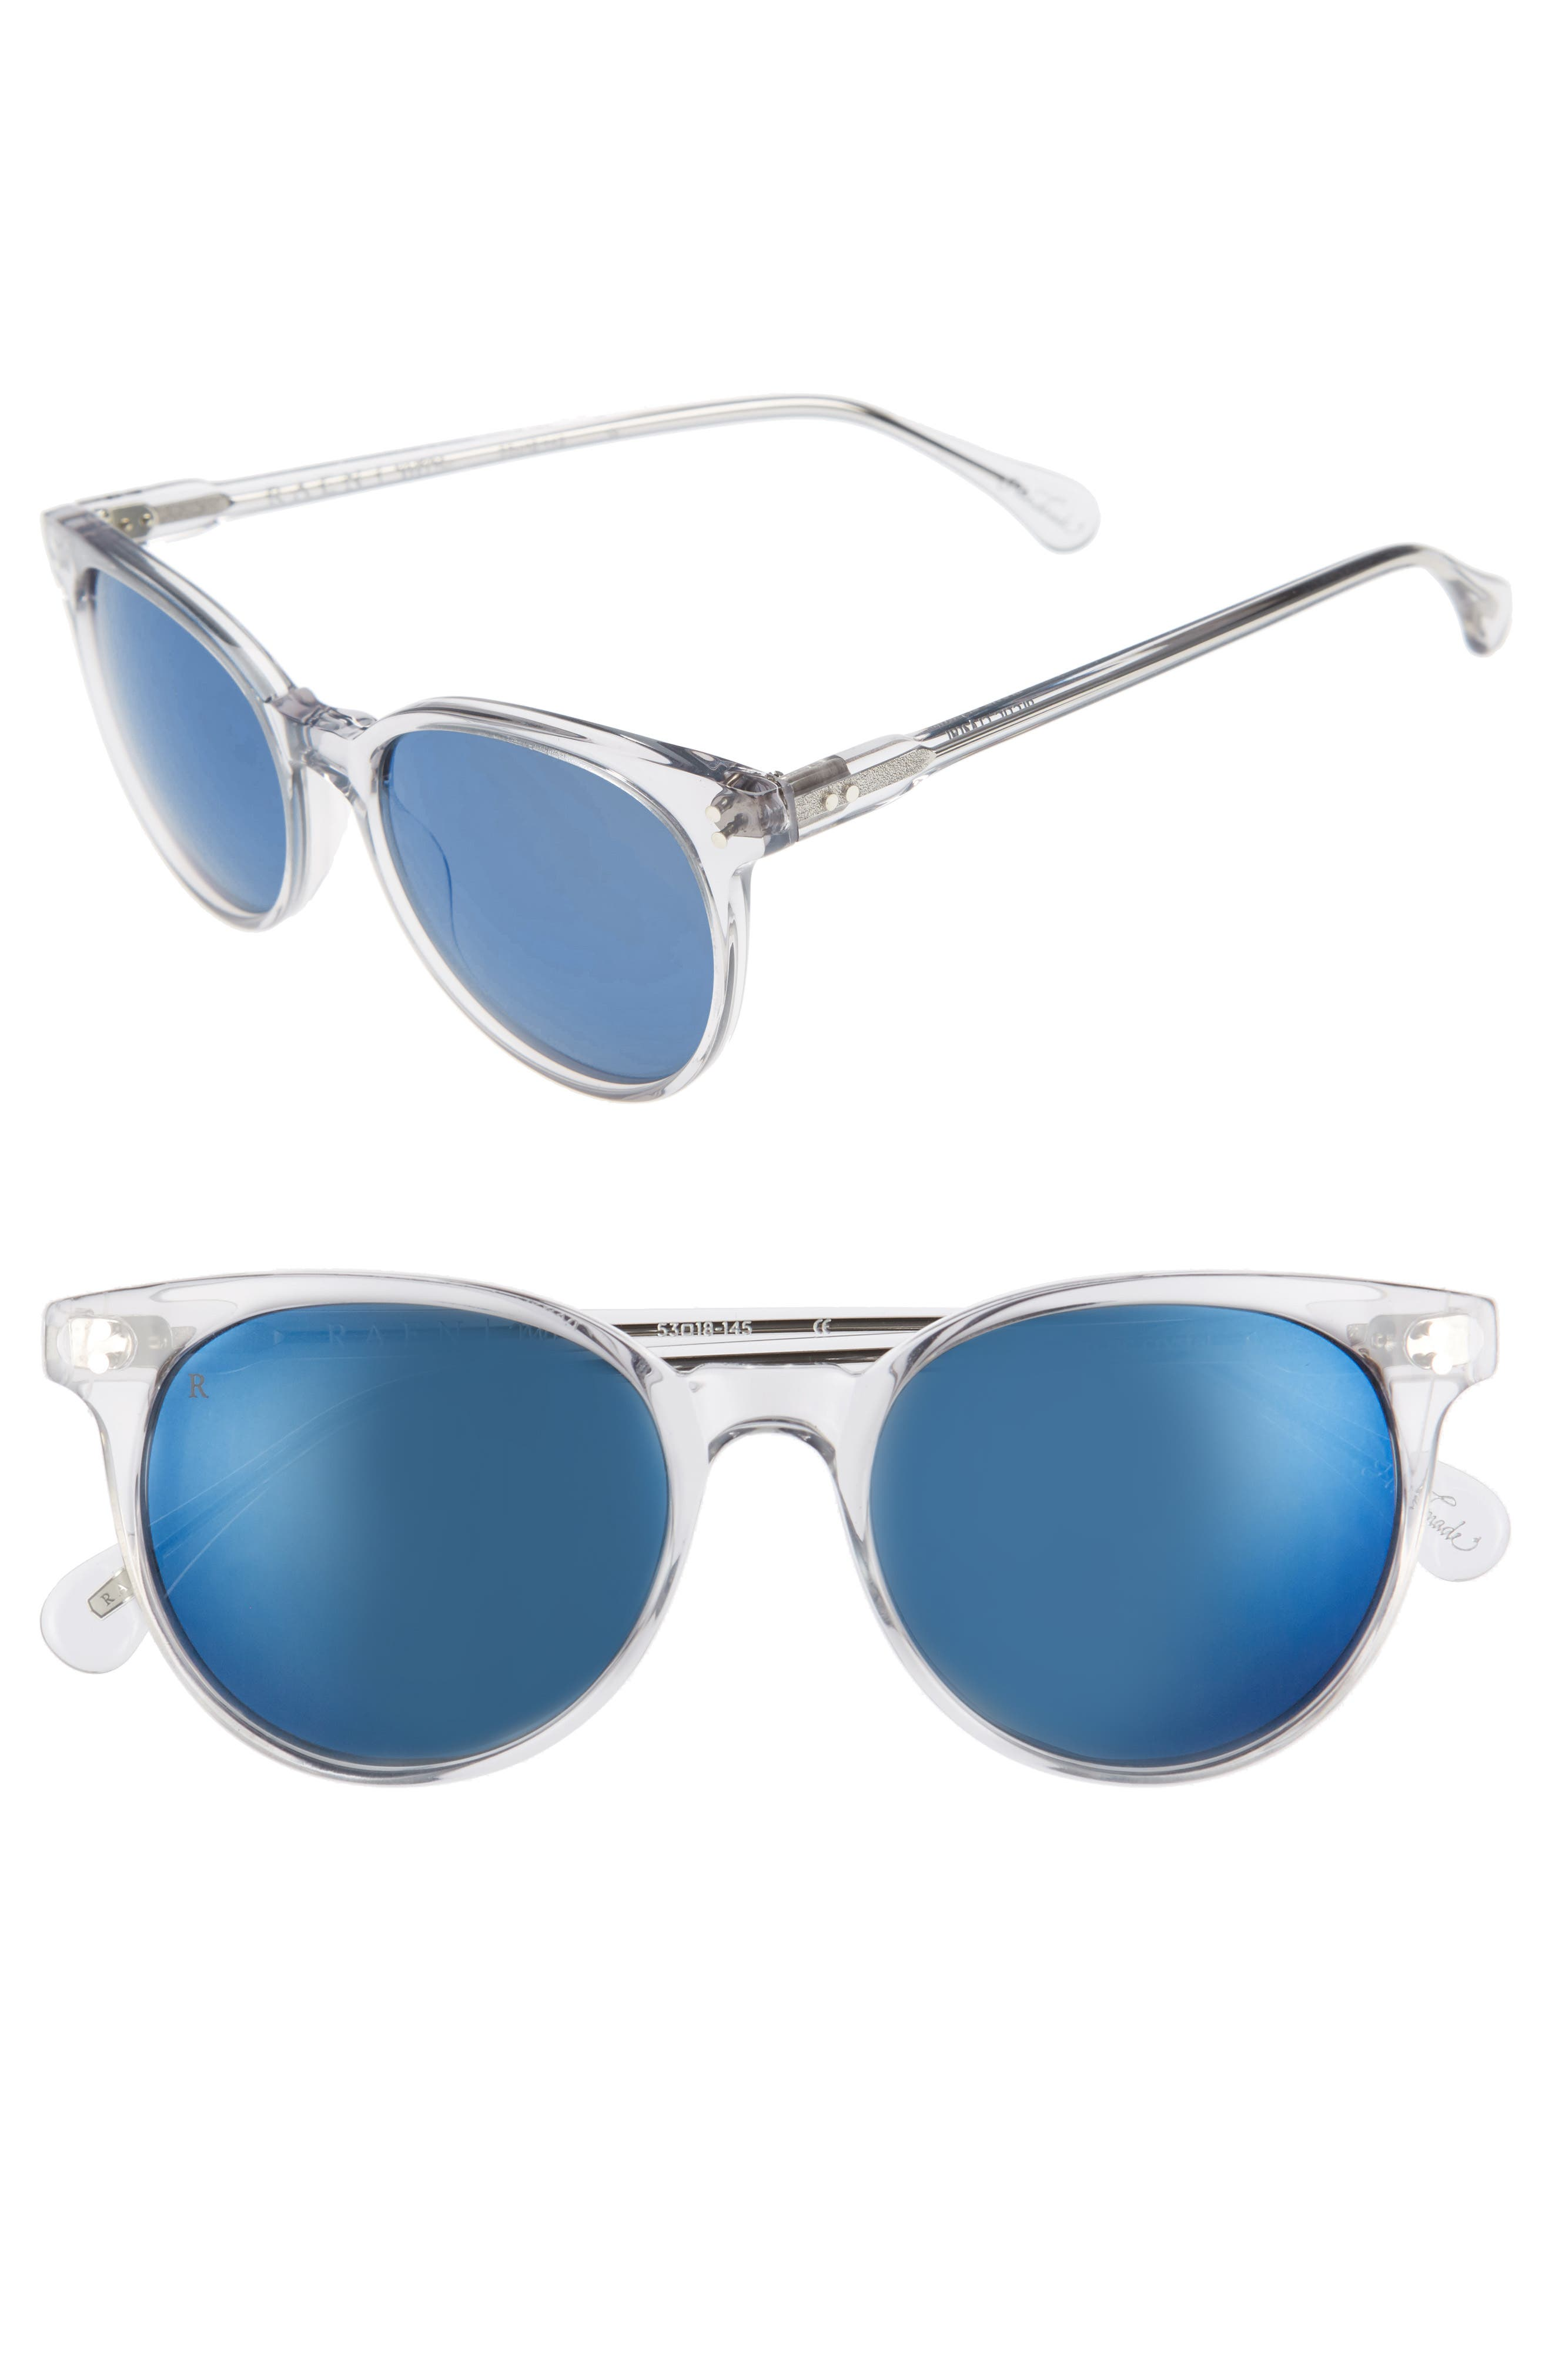 RAEN Norie 51mm Cat Eye Mirrored Lens Sunglasses